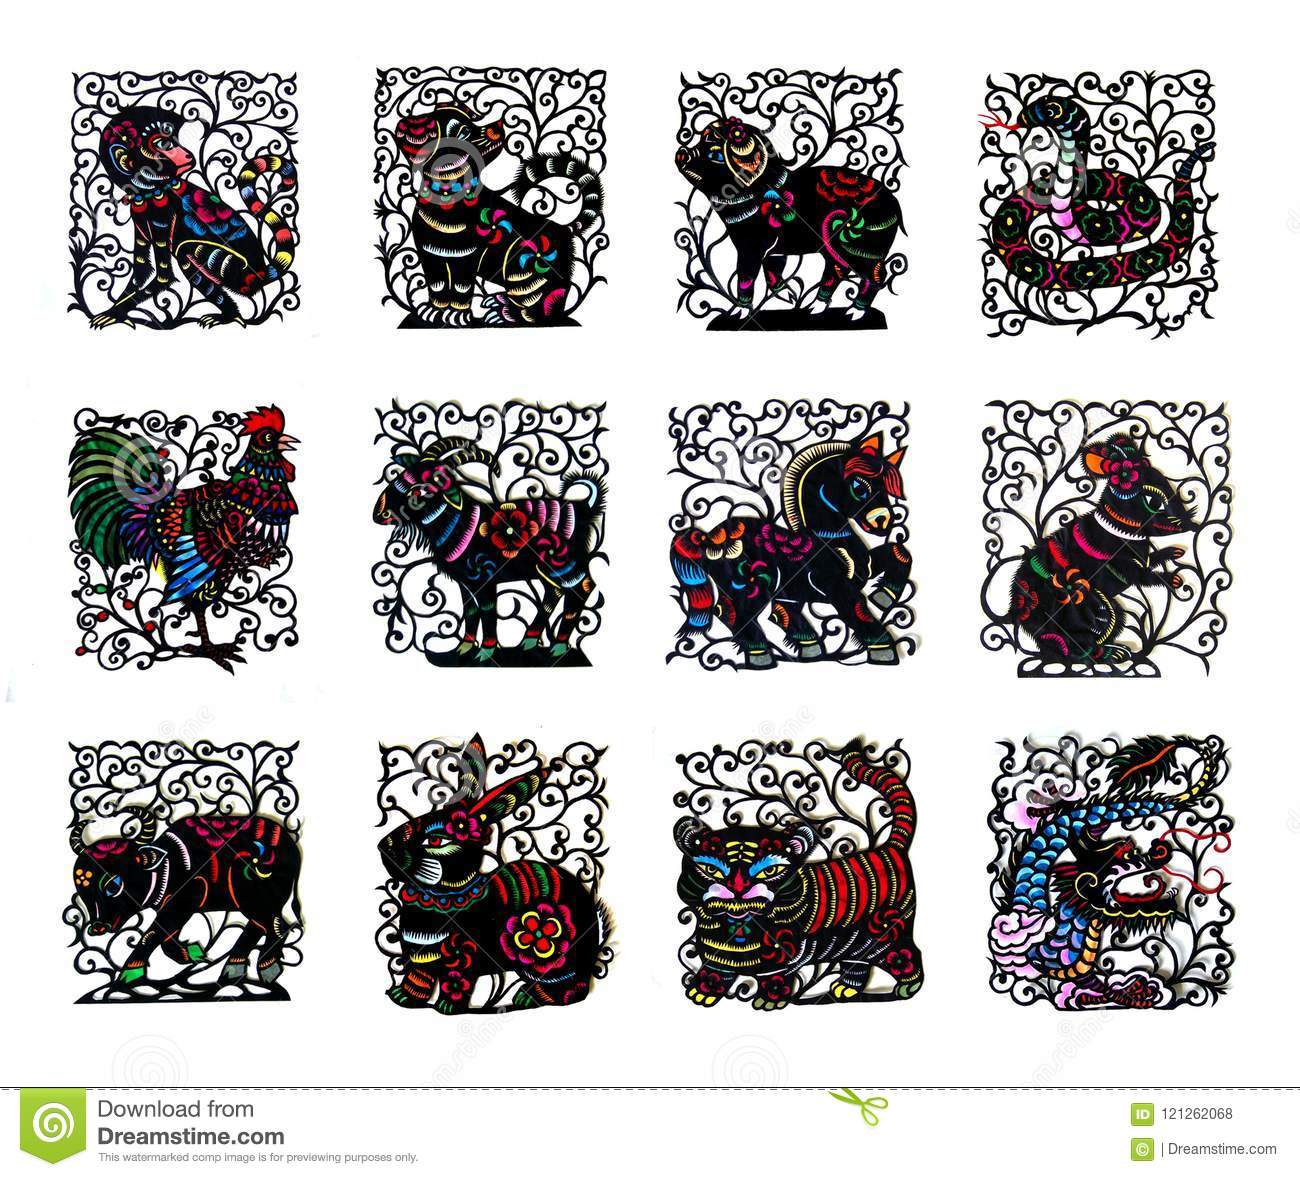 Black handmade cut paper chinese zodiac animals